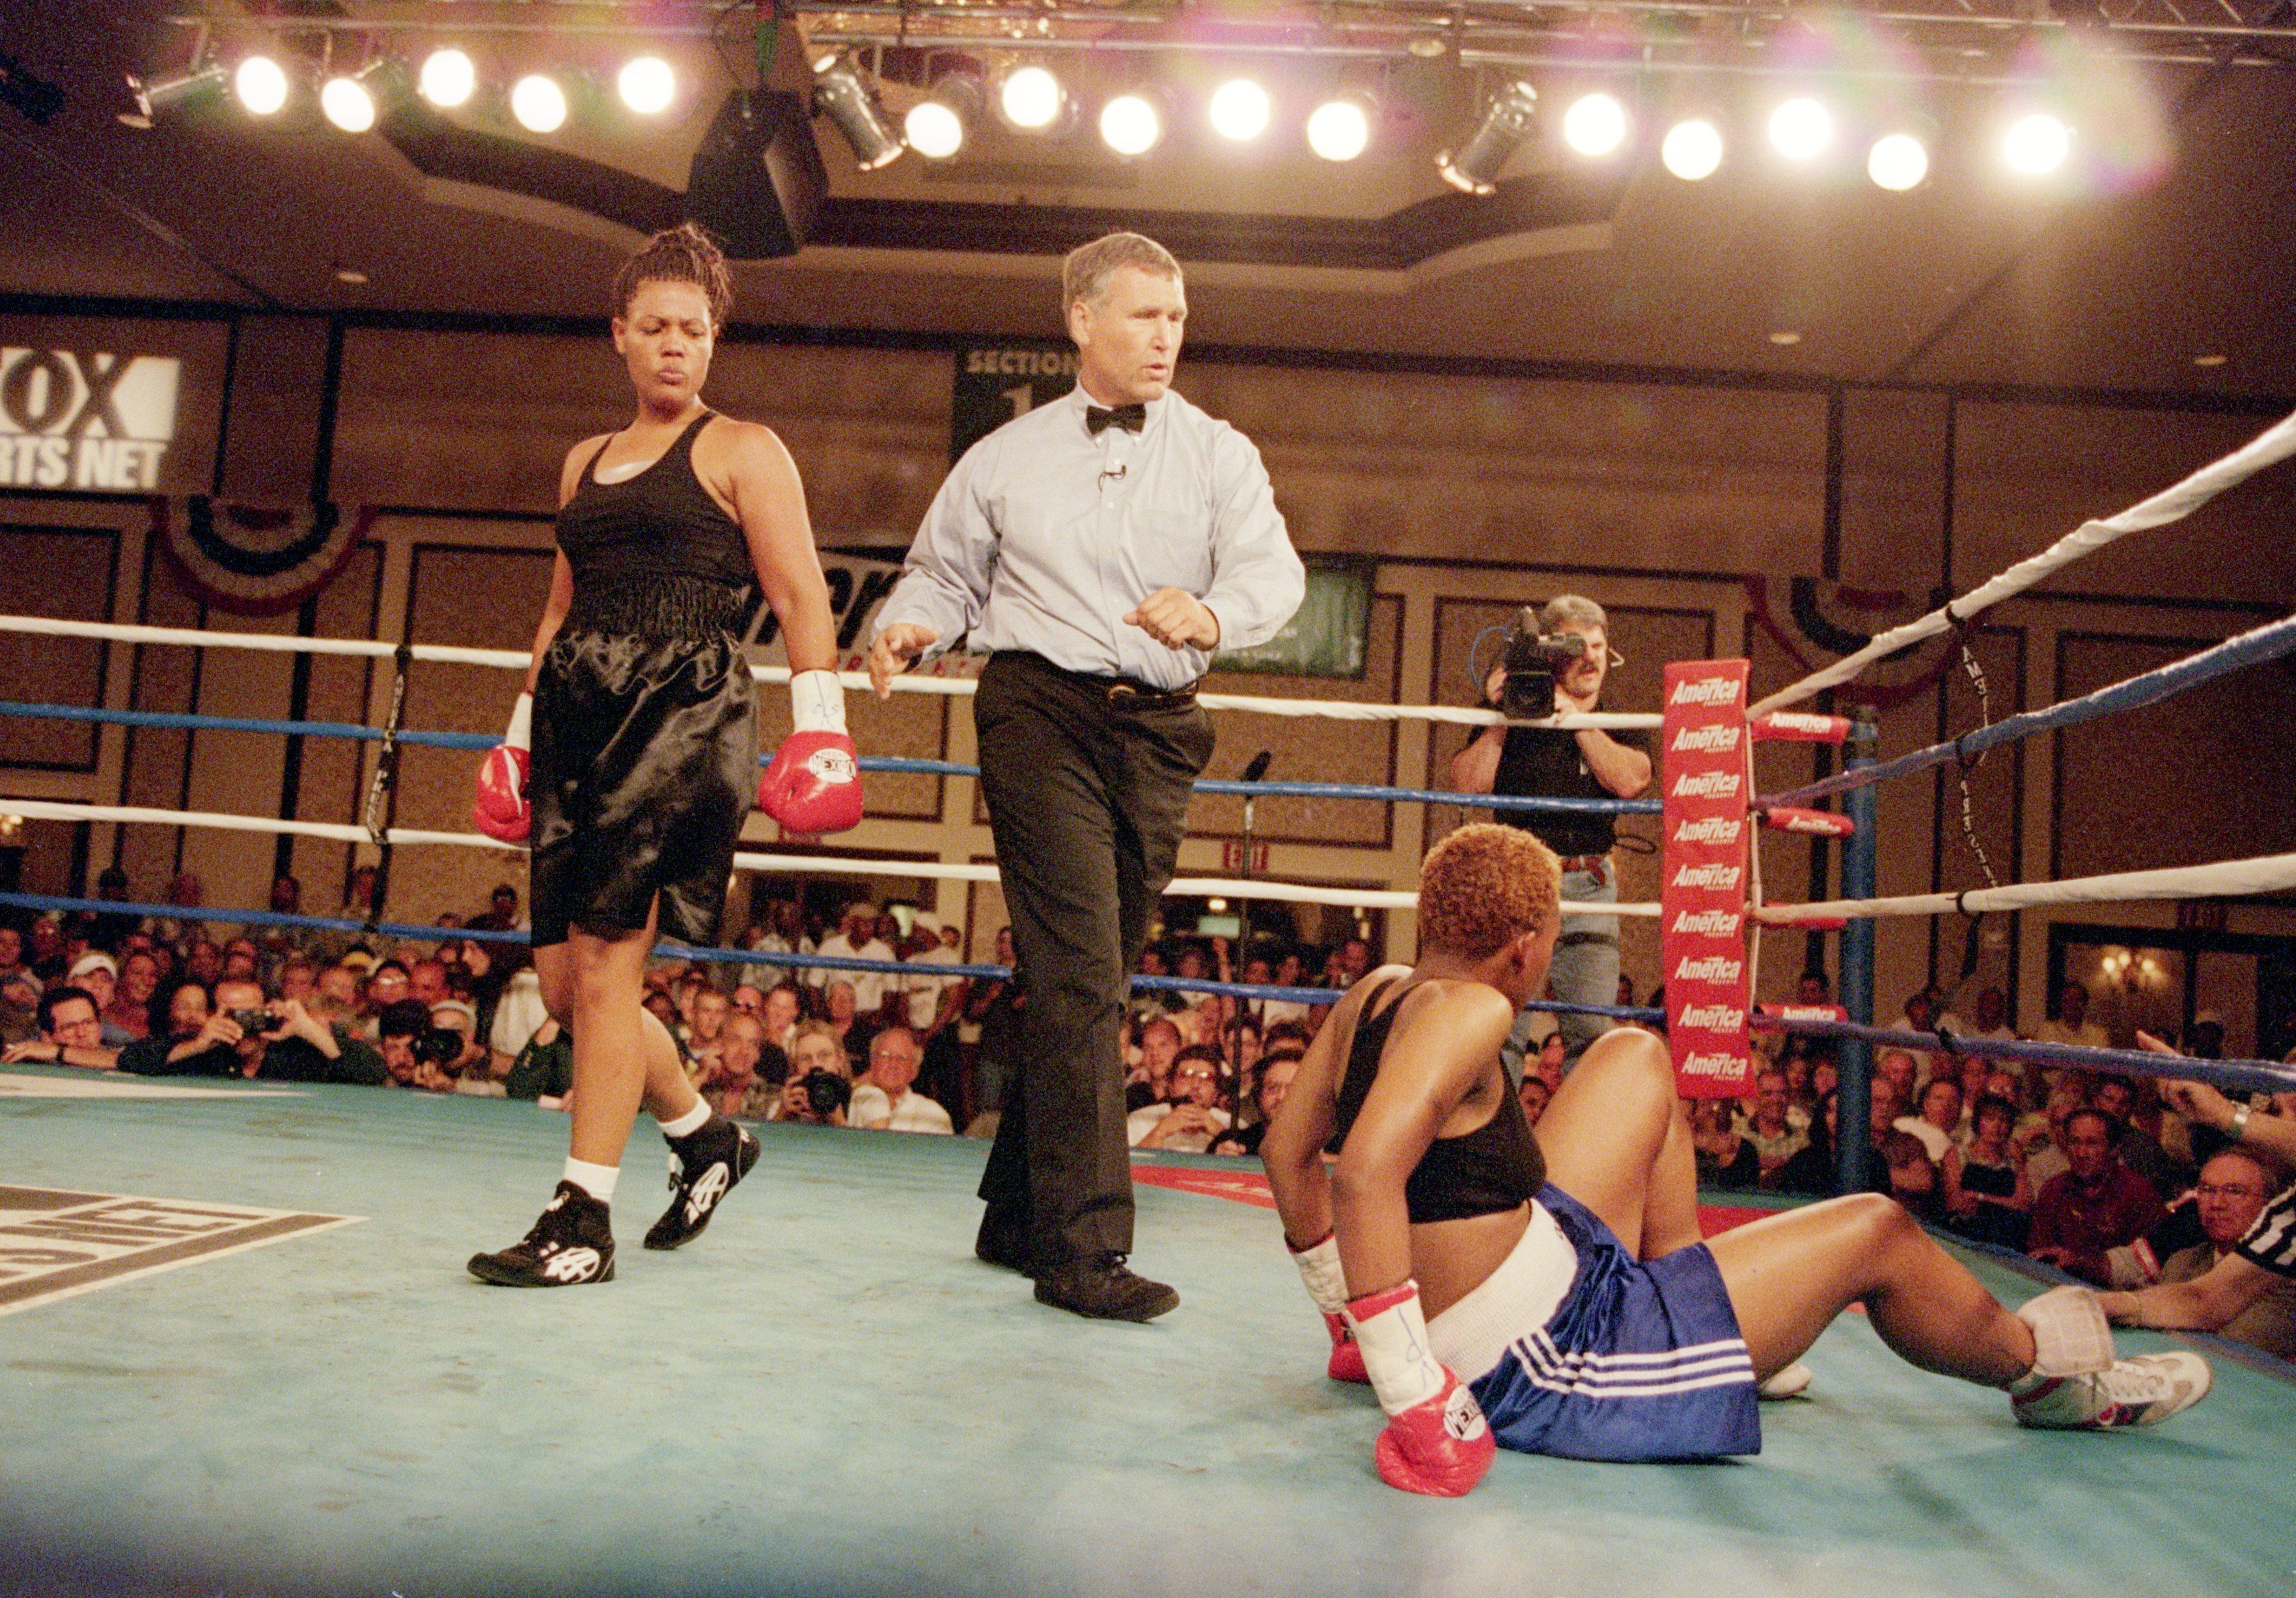 Freeda Foreman peers down at La Quanda Landers during their August 2000 fight